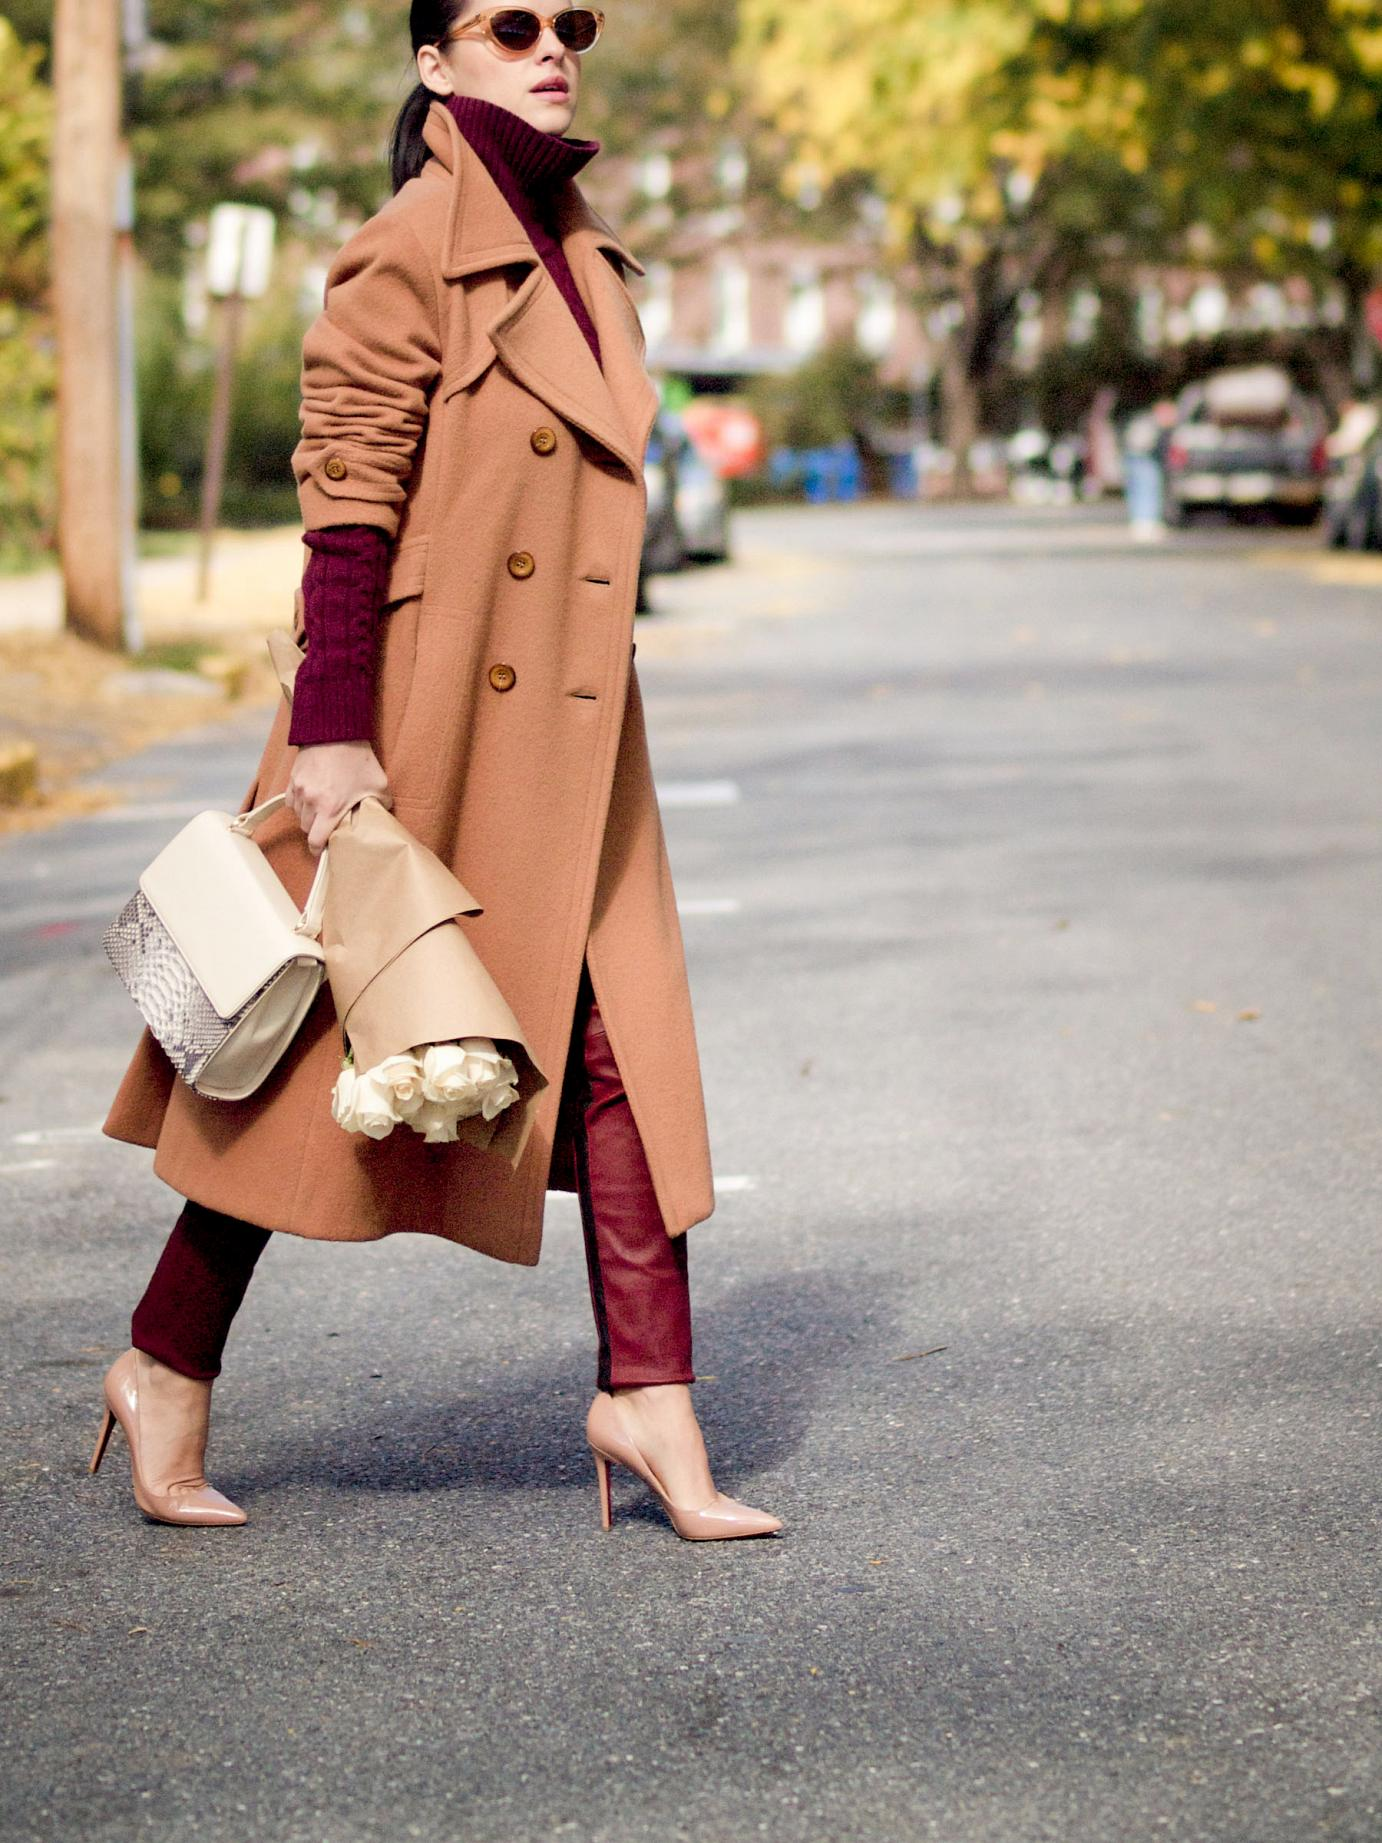 bittersweet colours, fall, fall coats, fall colors, camel coat, burgundy color, burgundy trend, leather pants, A.L.C. pants, christian louboutin shoes, maternity style, 20 weeks, bumb style, eye cat sunglasses, mini bag, street style, fall street style,